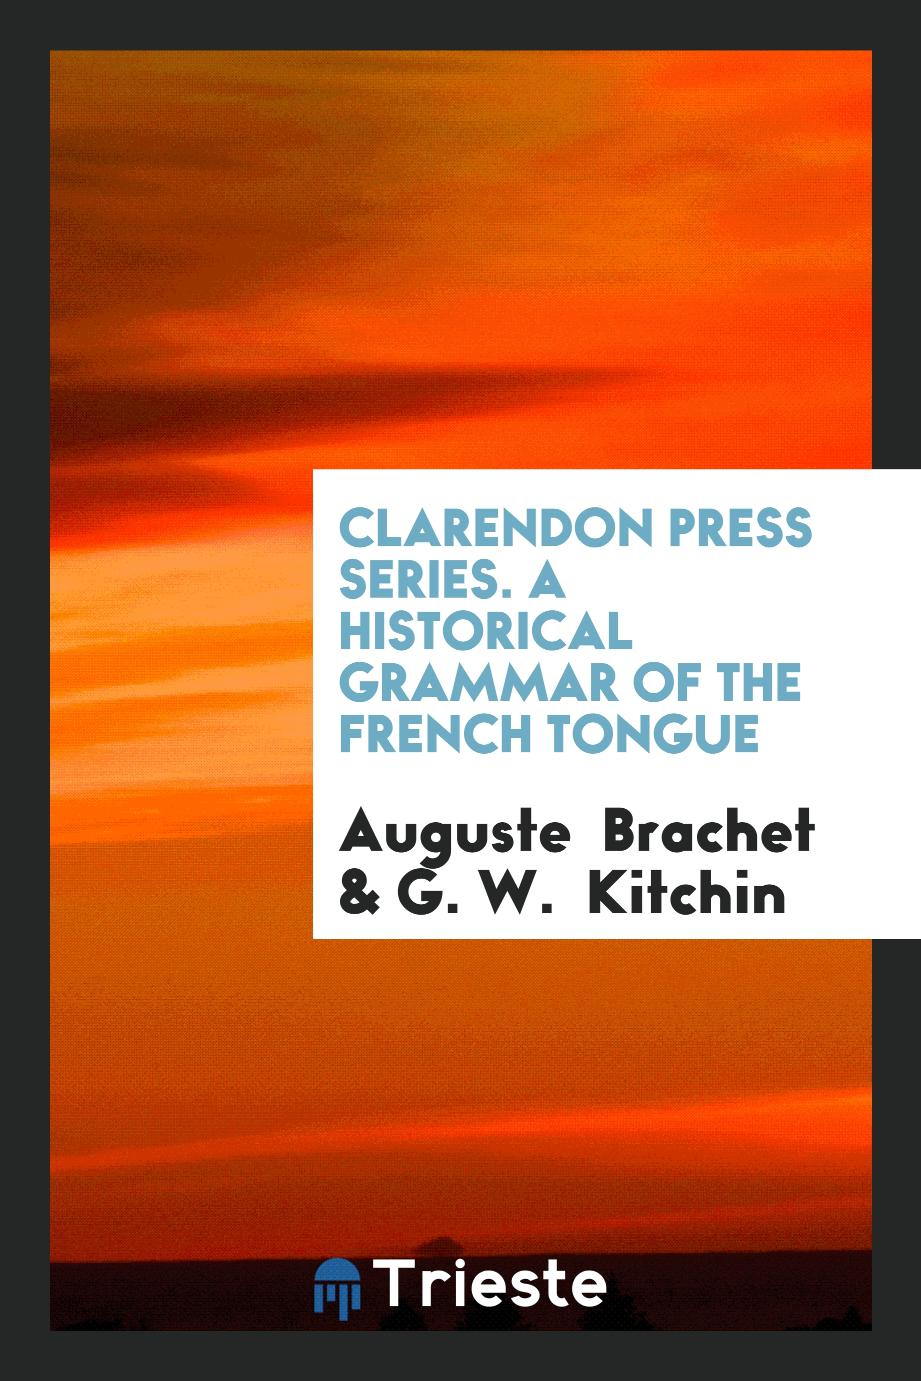 Clarendon Press Series. A Historical Grammar of the French Tongue